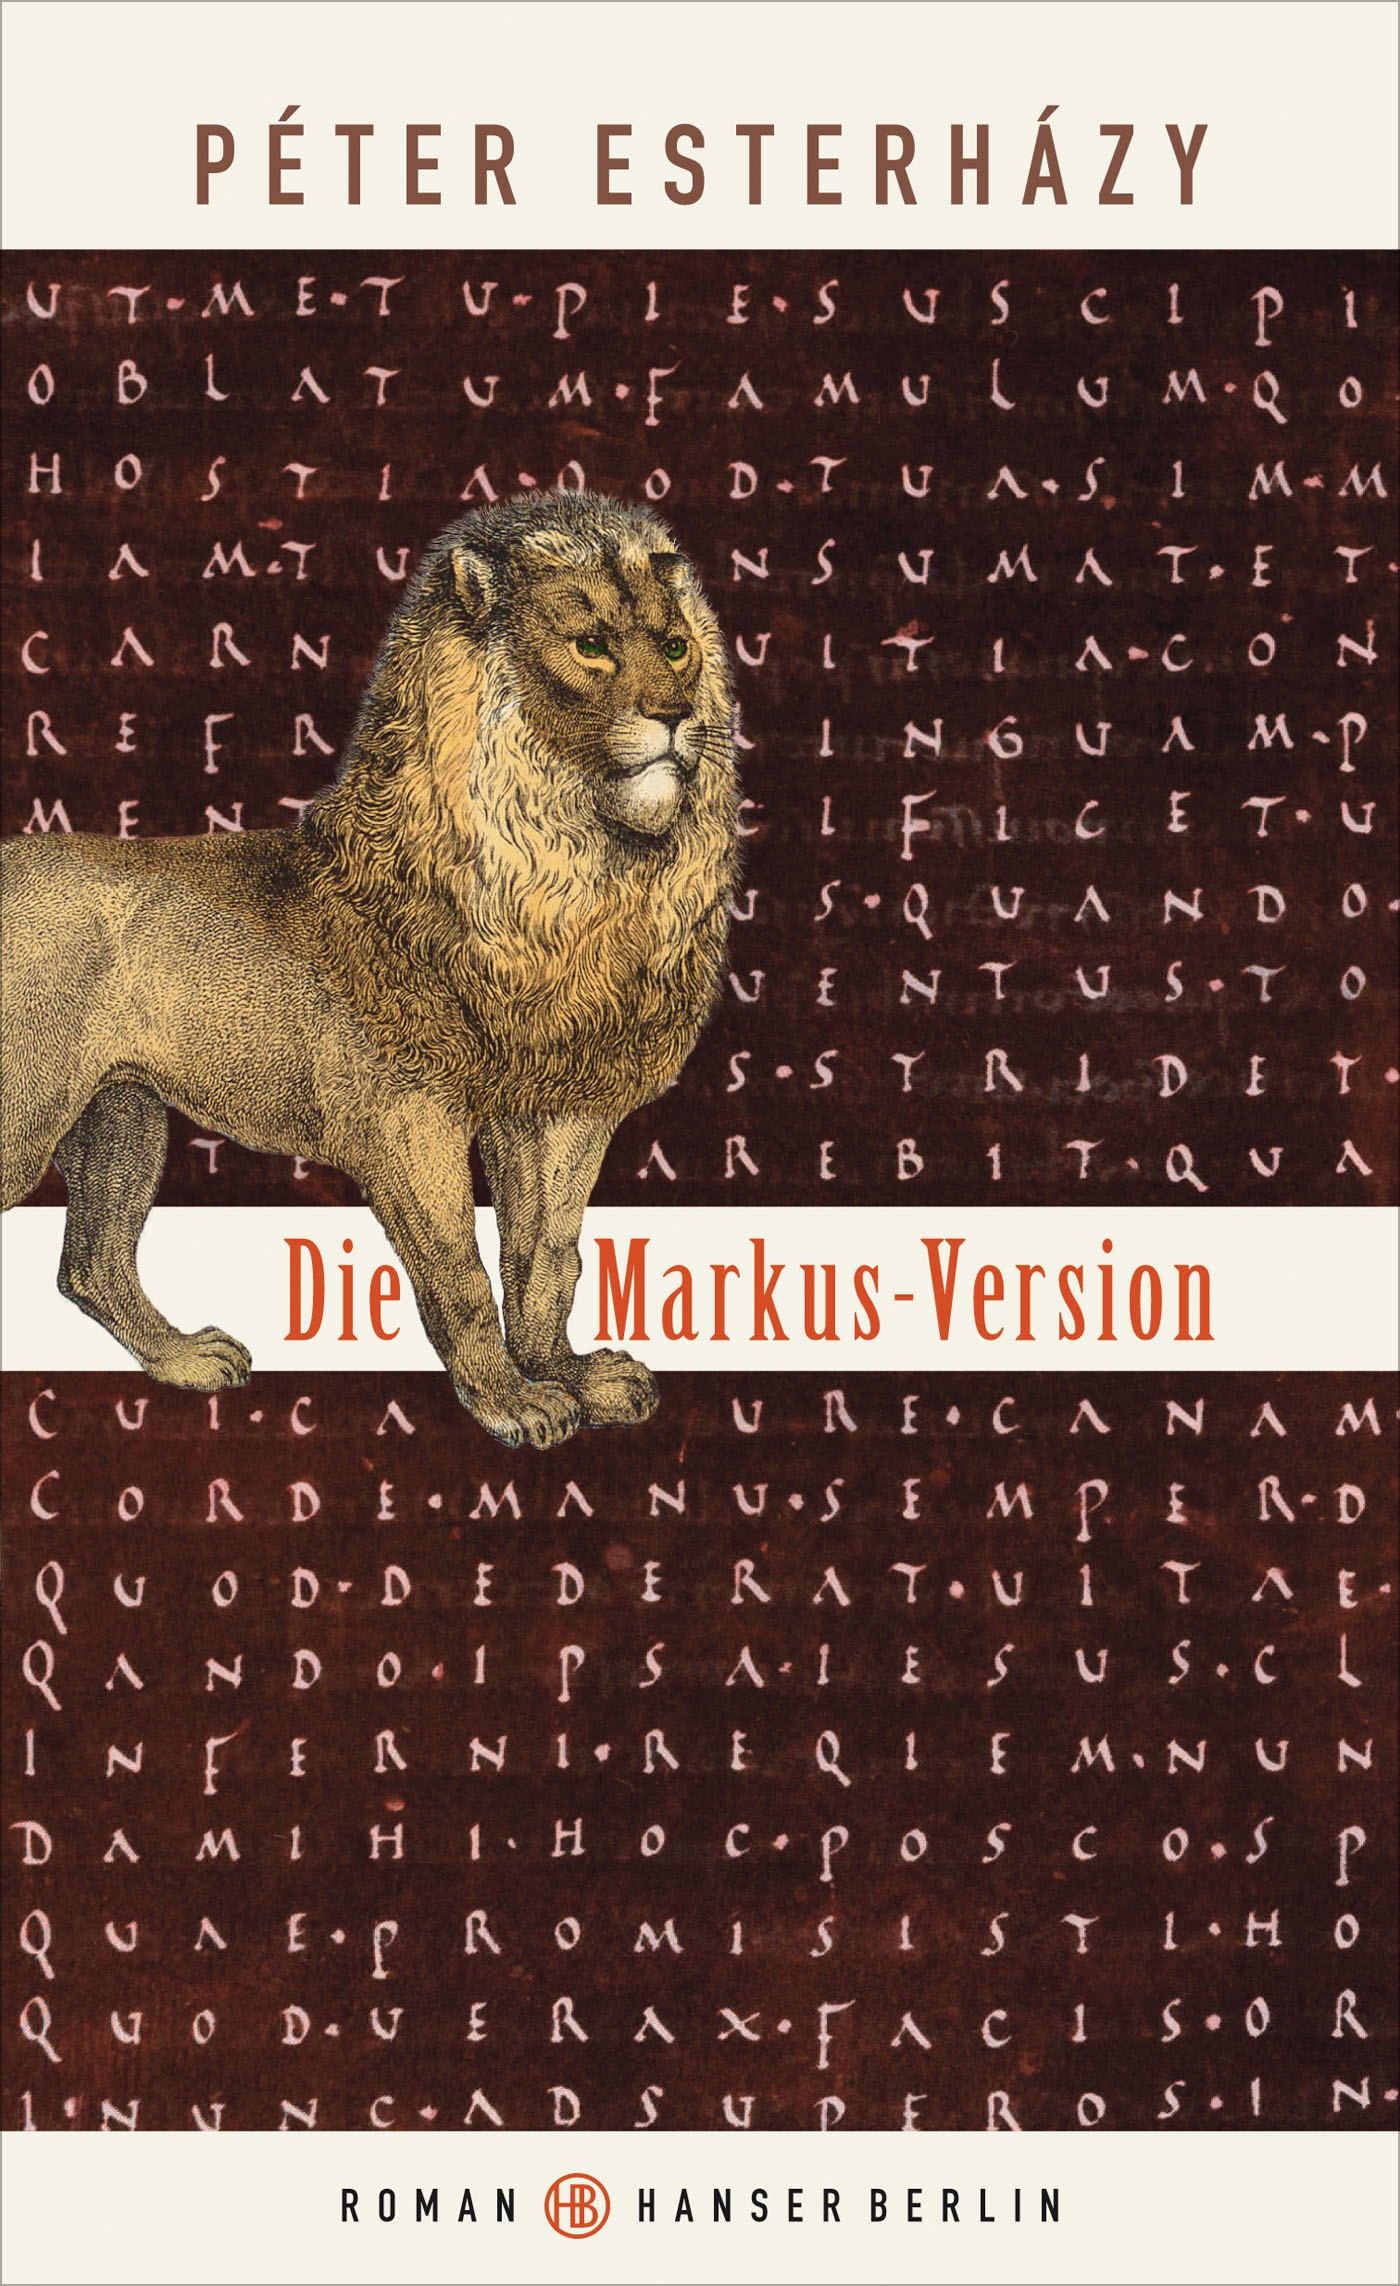 Die Markus-Version